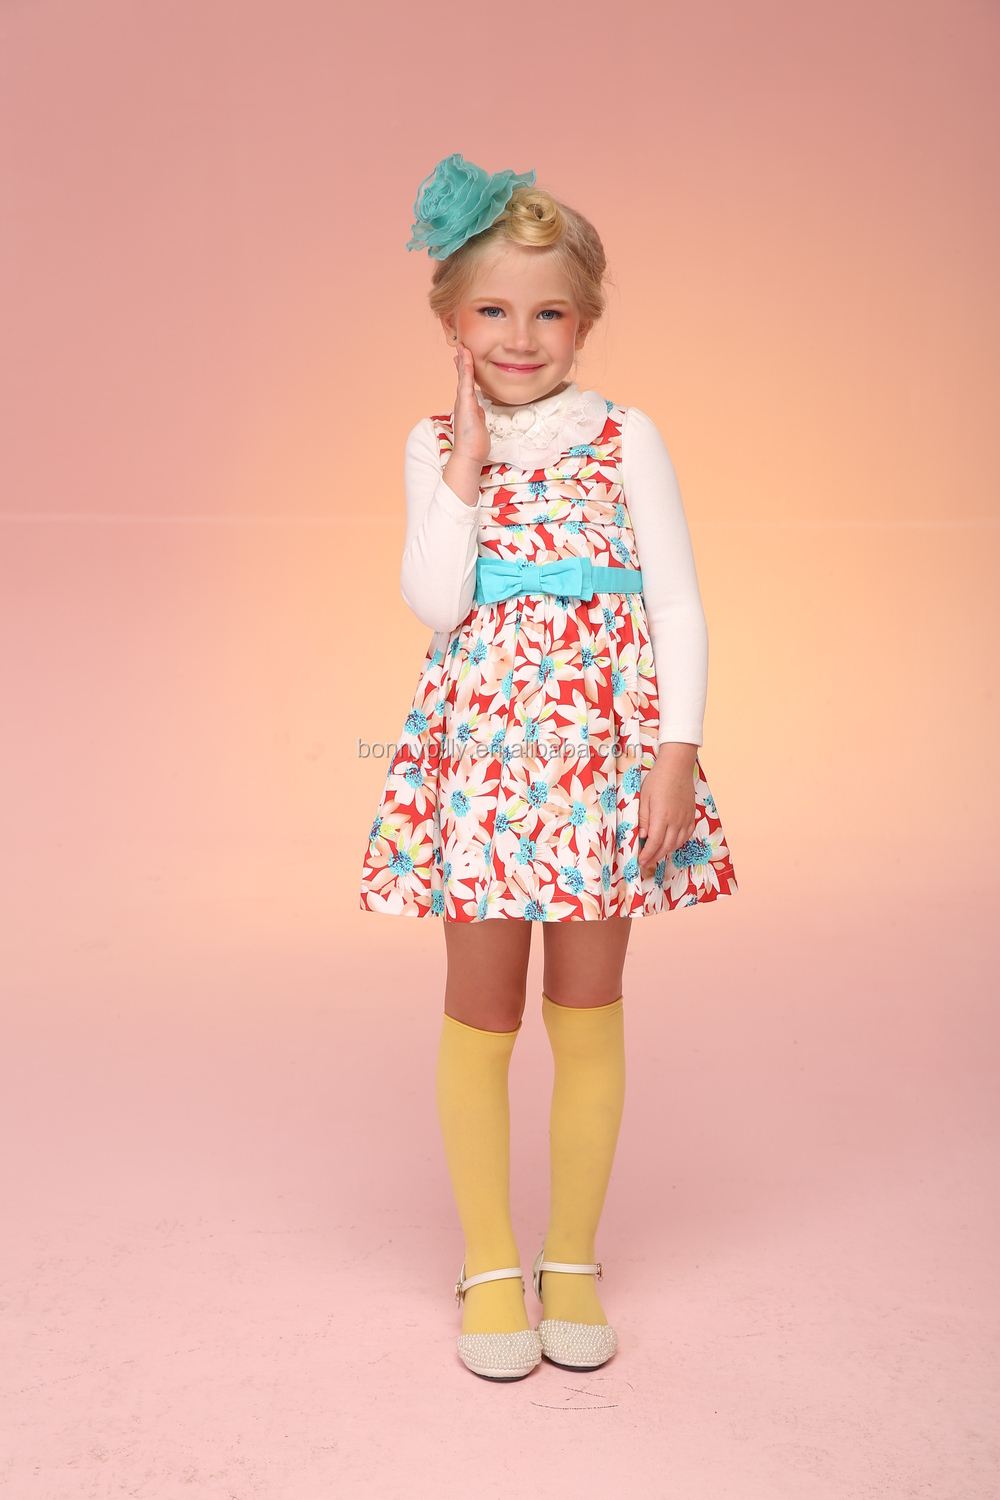 43e2f2540916 Bonnybilly New Winter Dress